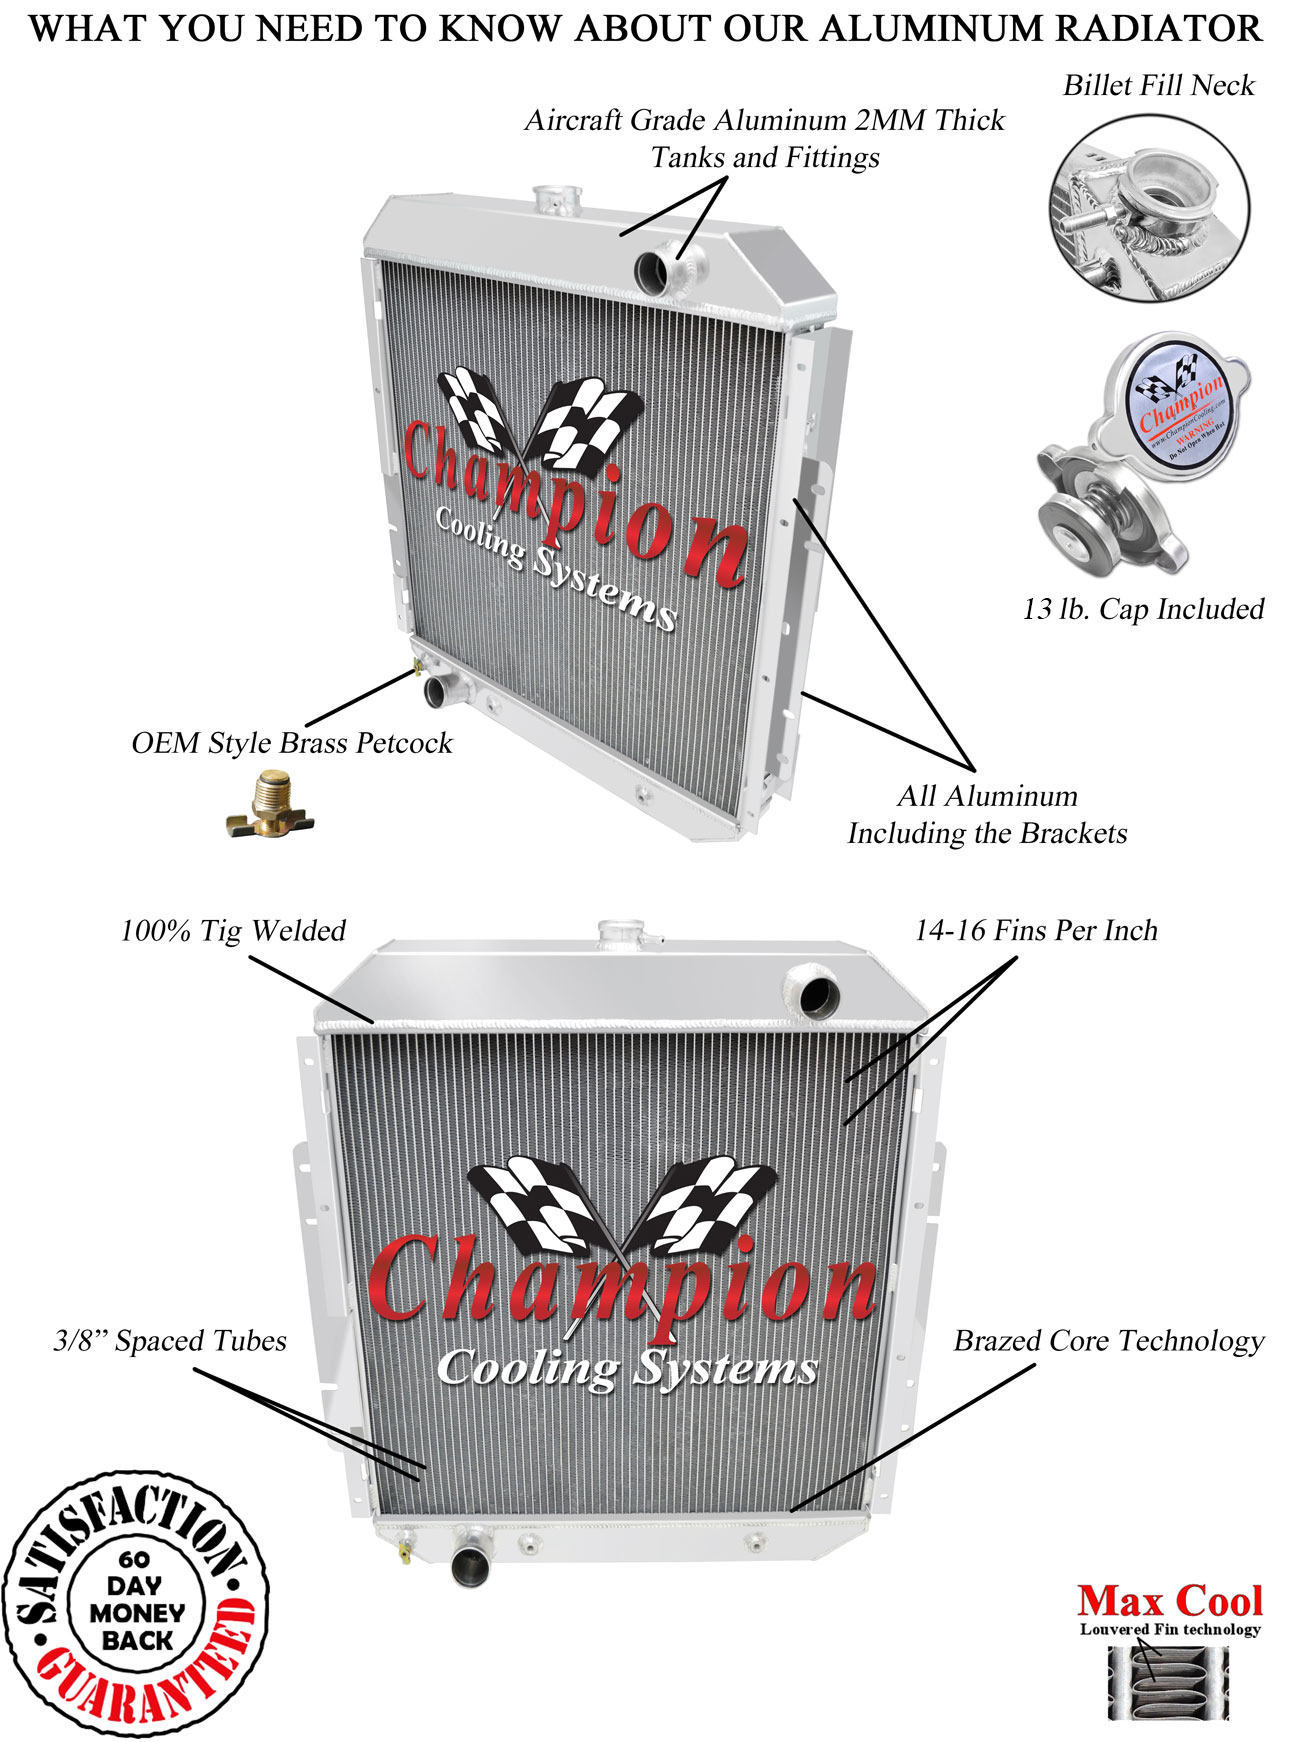 https://www.championcooling.com/photos/Photos%20White/Without%20Fans/480/480_d_w.jpg